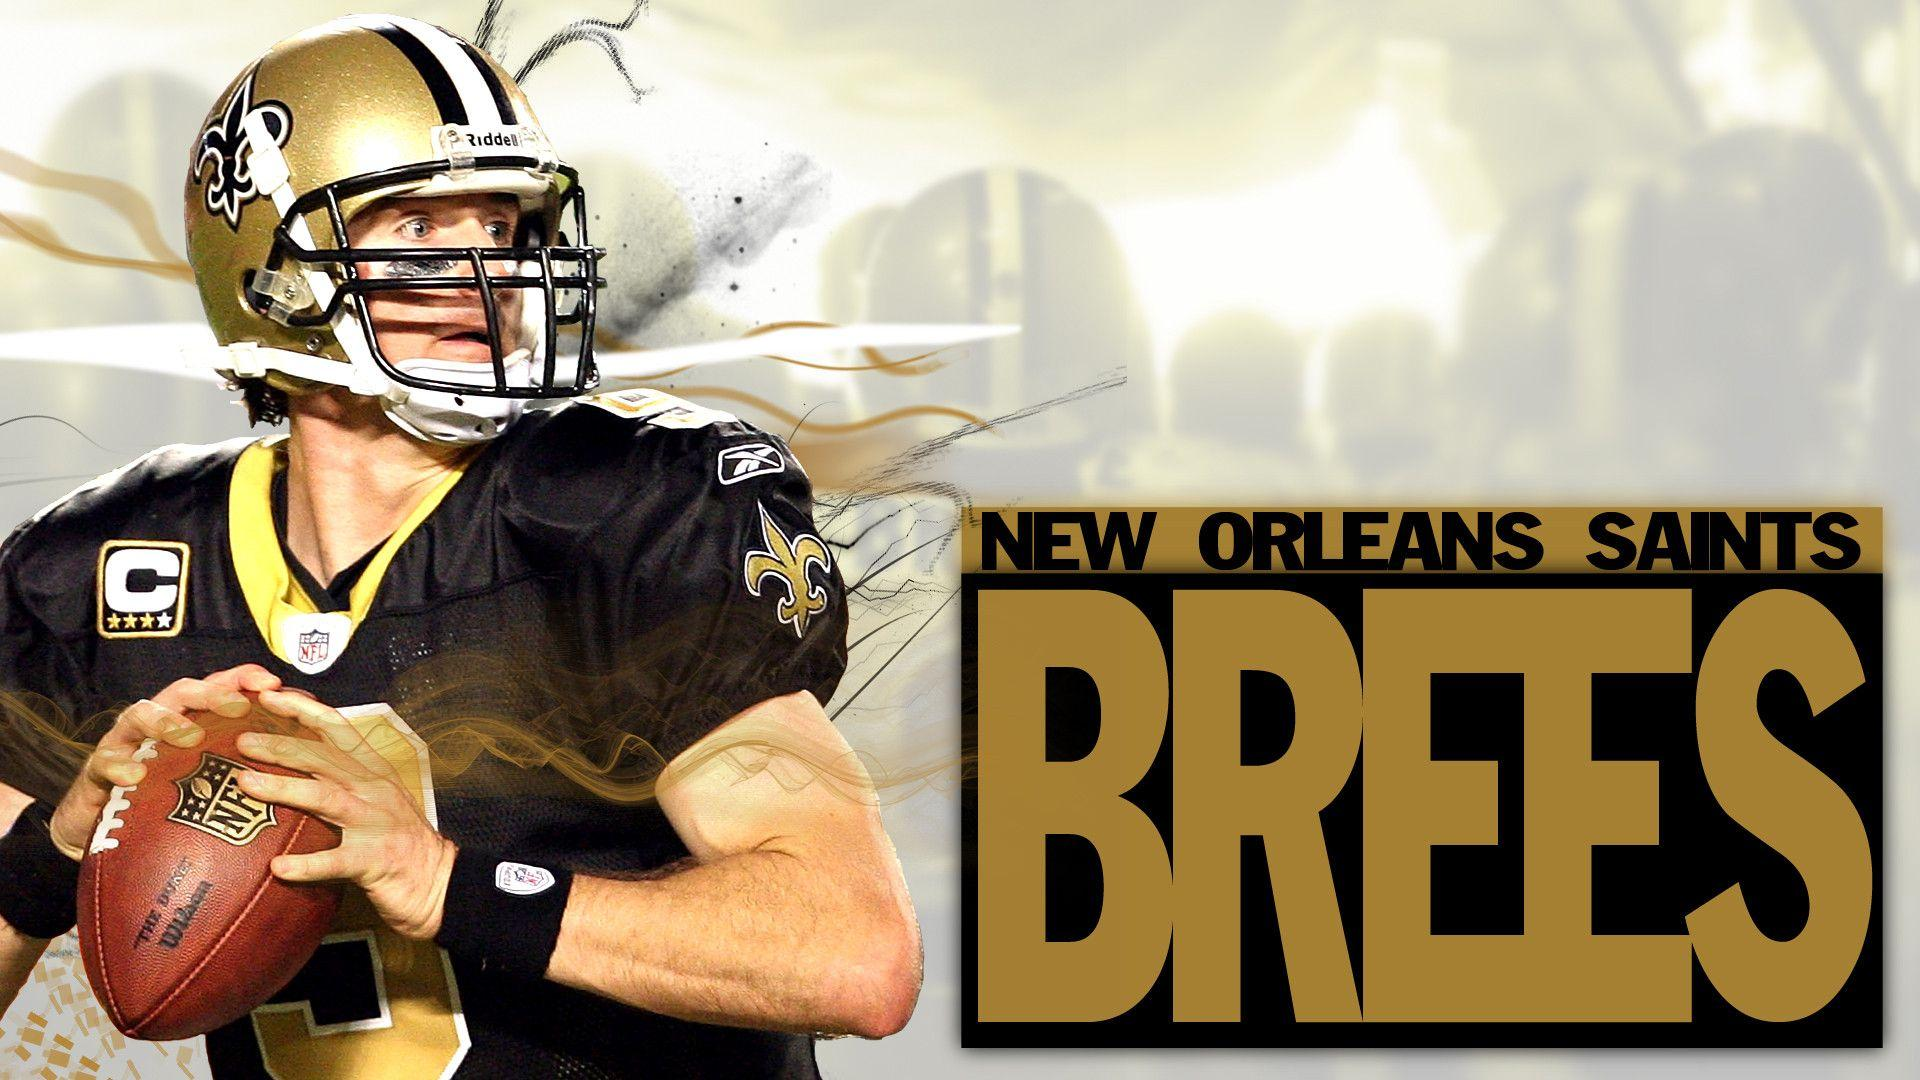 Drew Brees NFL HD Wallpapers New Tab Theme   Sports Fan Tab 1920x1080